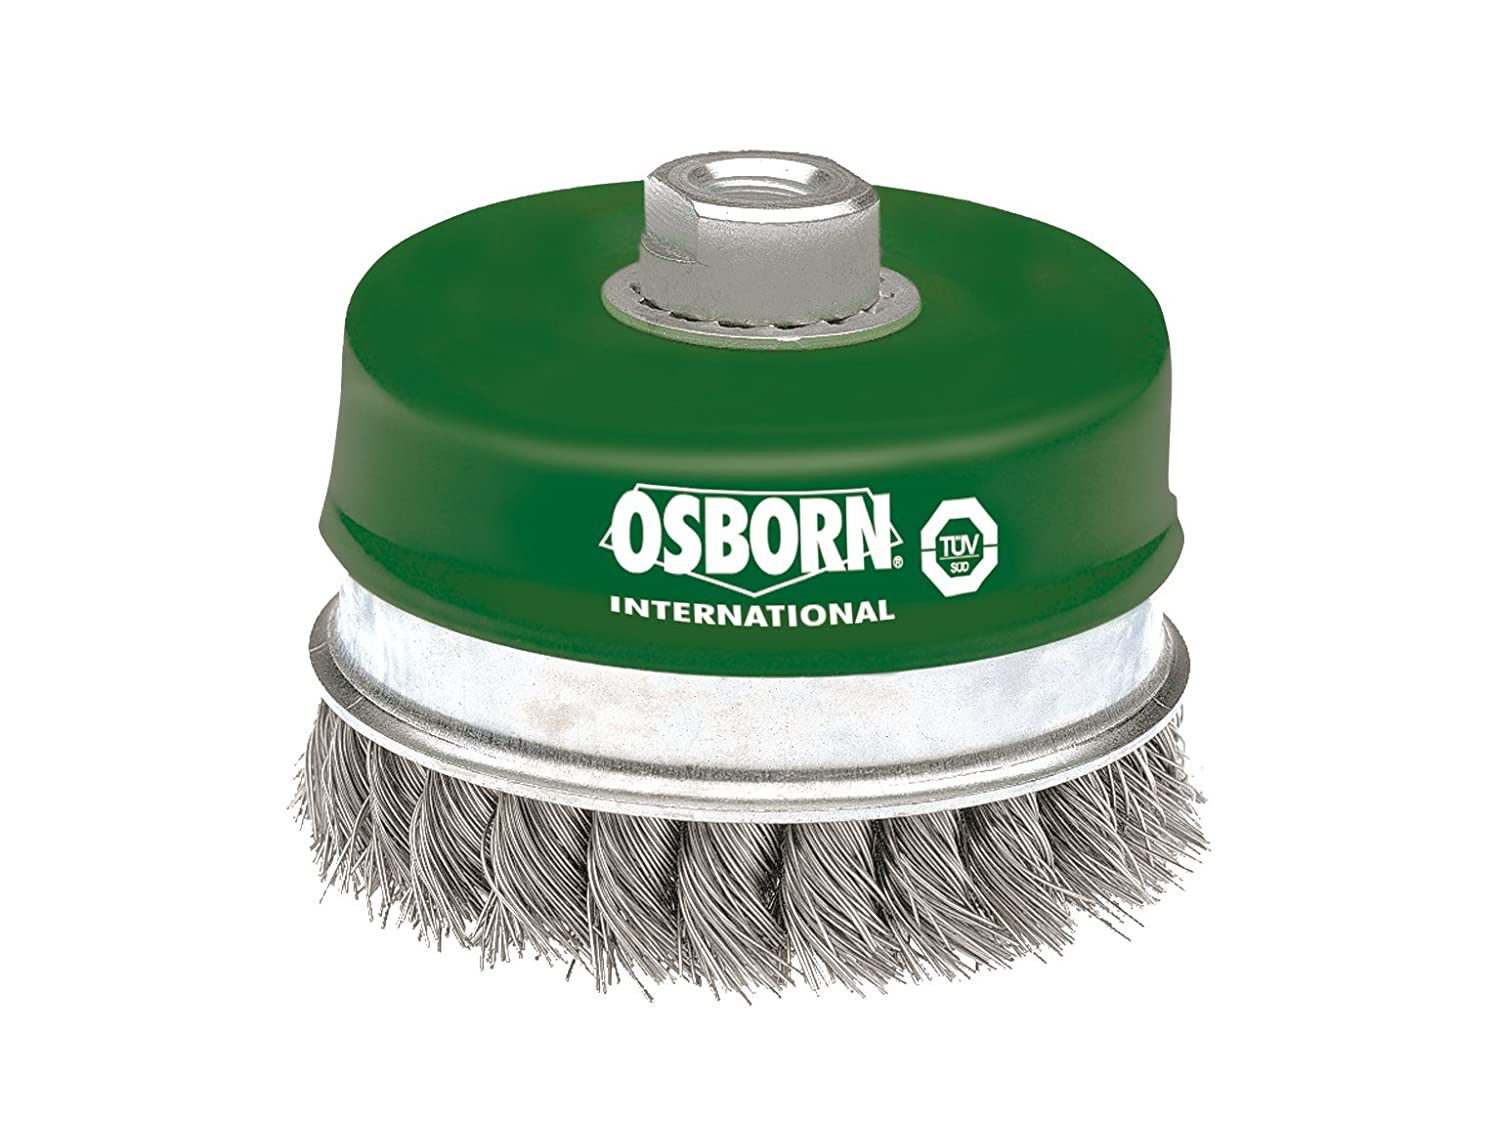 Osborn Pot Brush for Angle Grinder 180 mm, Diameter 100 mm, Thread M 14 x 2, Stainless Steel Twisted Wire 0.50 mm with Support Ring TUV Tested, Green, 2608354